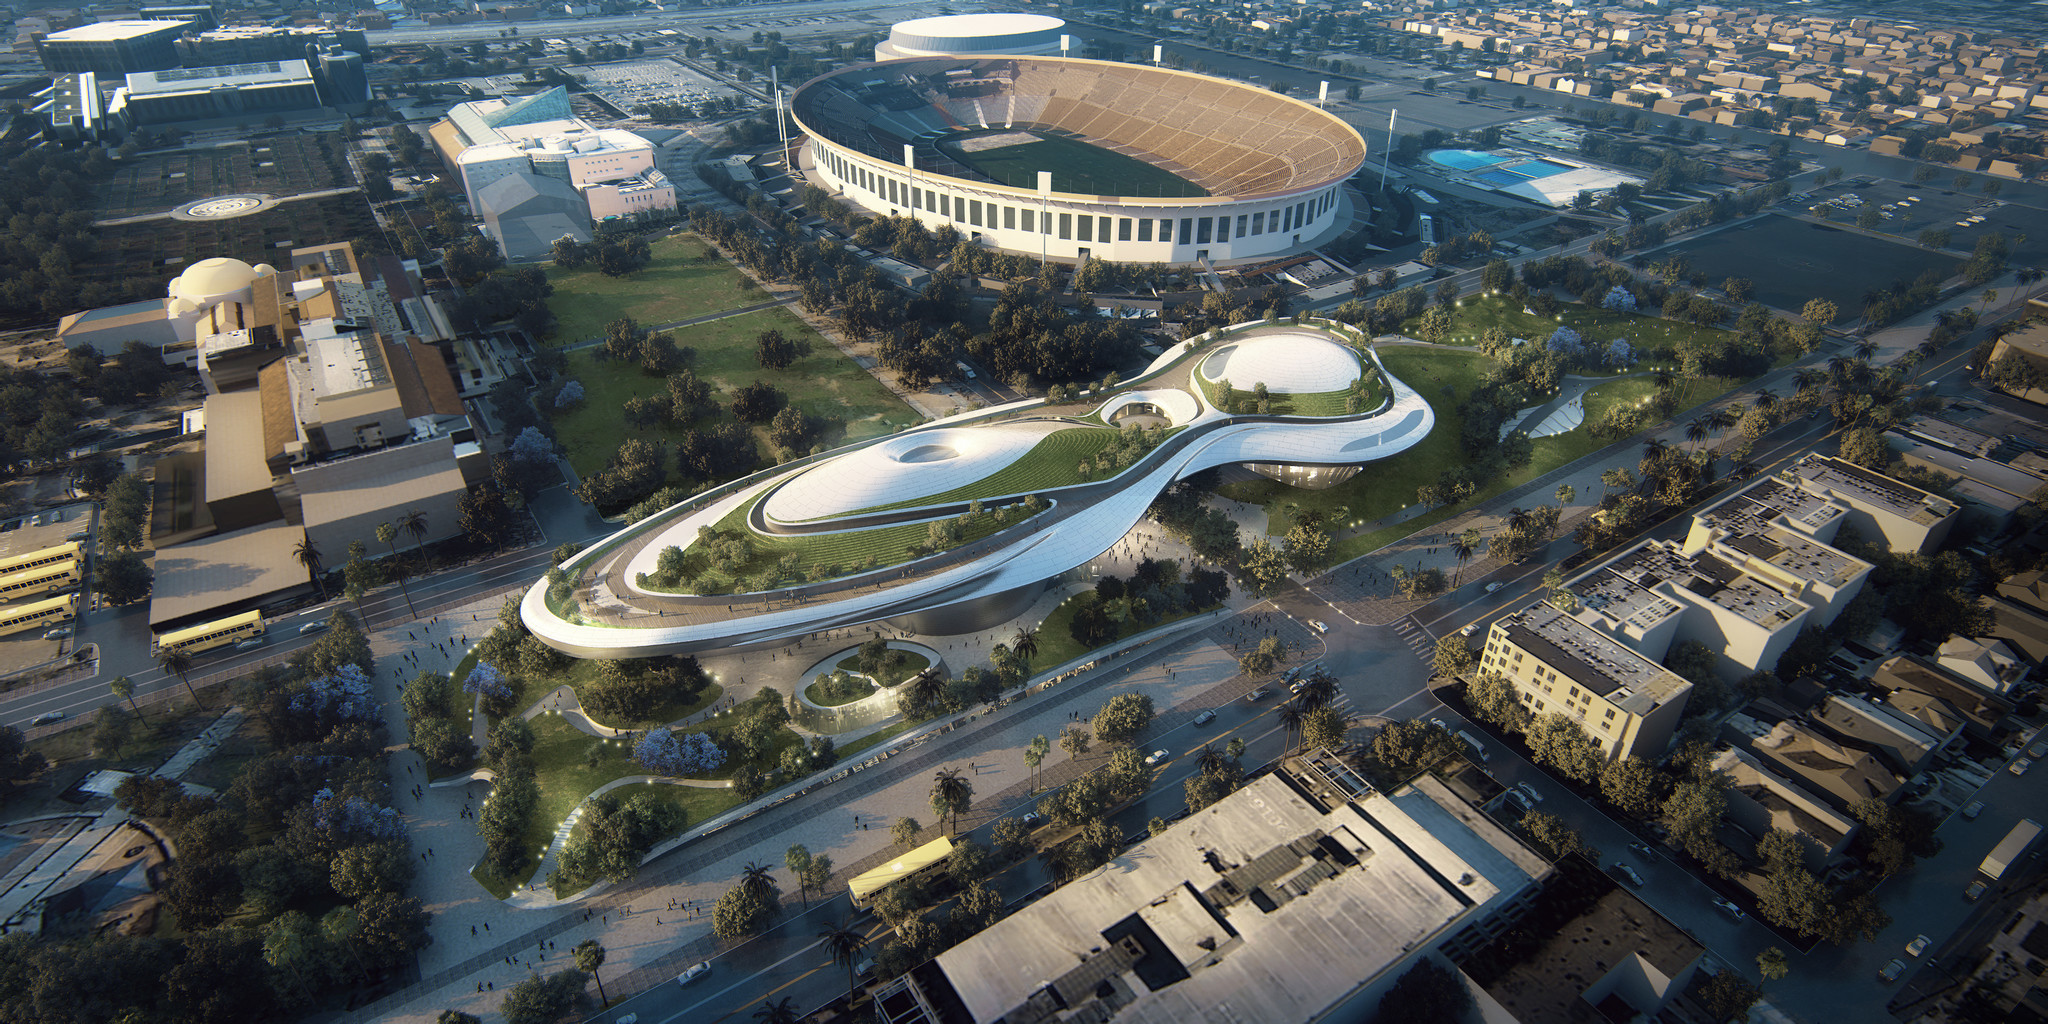 The Lucas Museum proposal for Exposition Park, with the Coliseum lying beyond it.